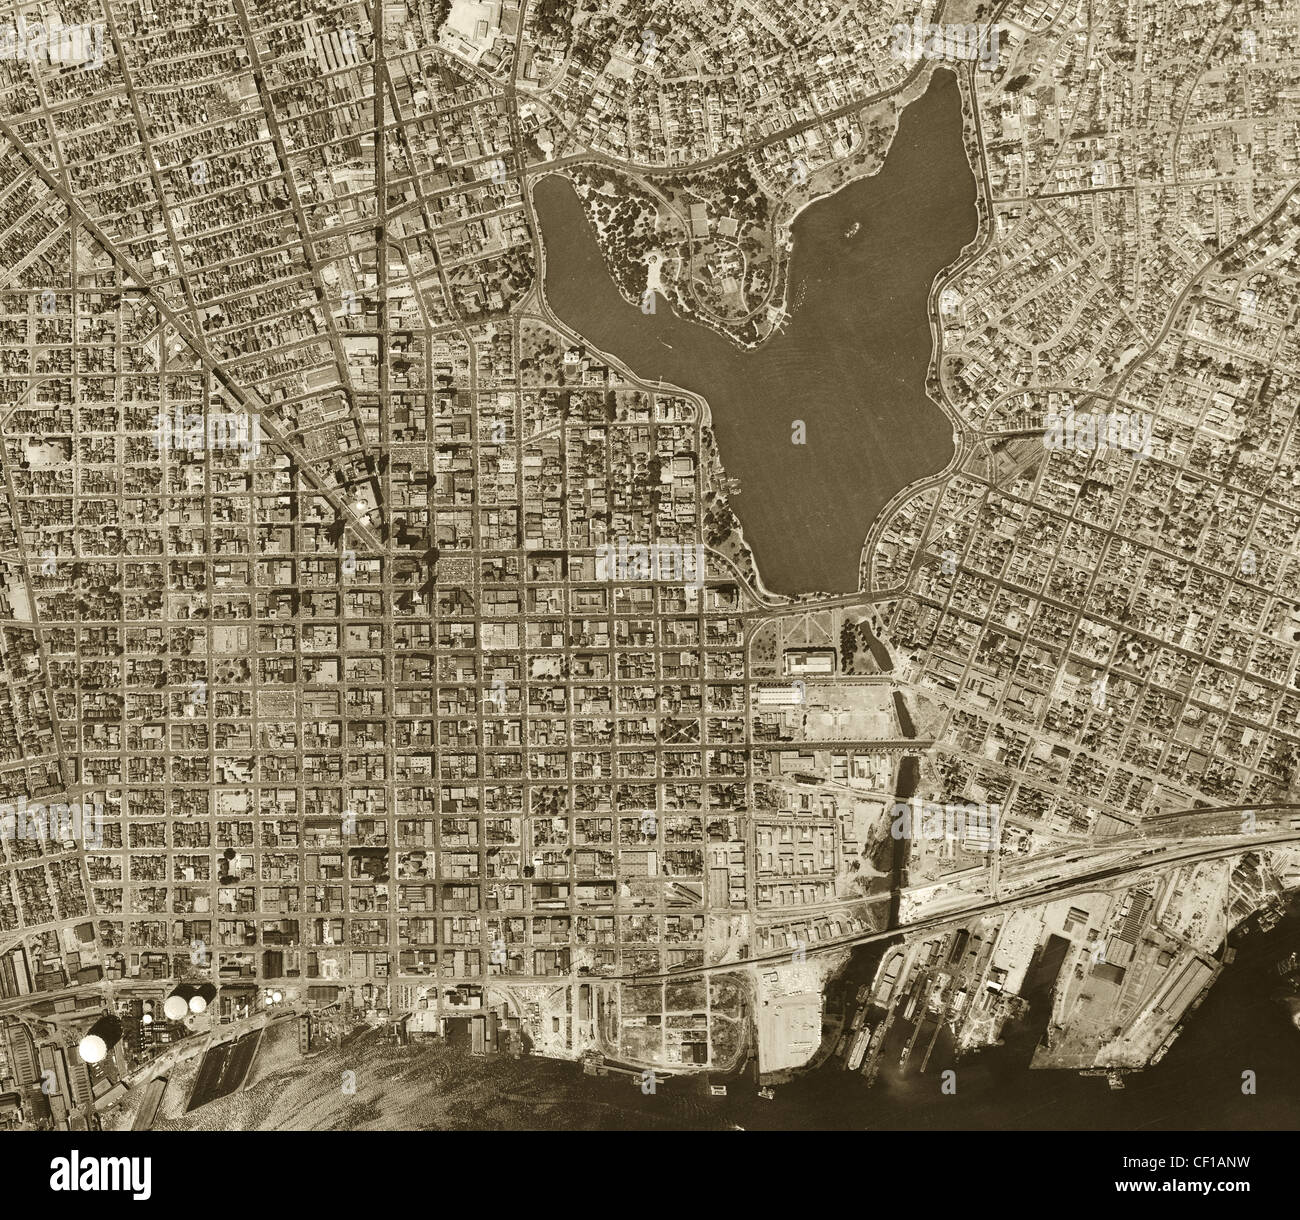 Vintage map of oakland stock photos vintage map of oakland stock historical aerial photograph oakland california 1946 stock image publicscrutiny Image collections